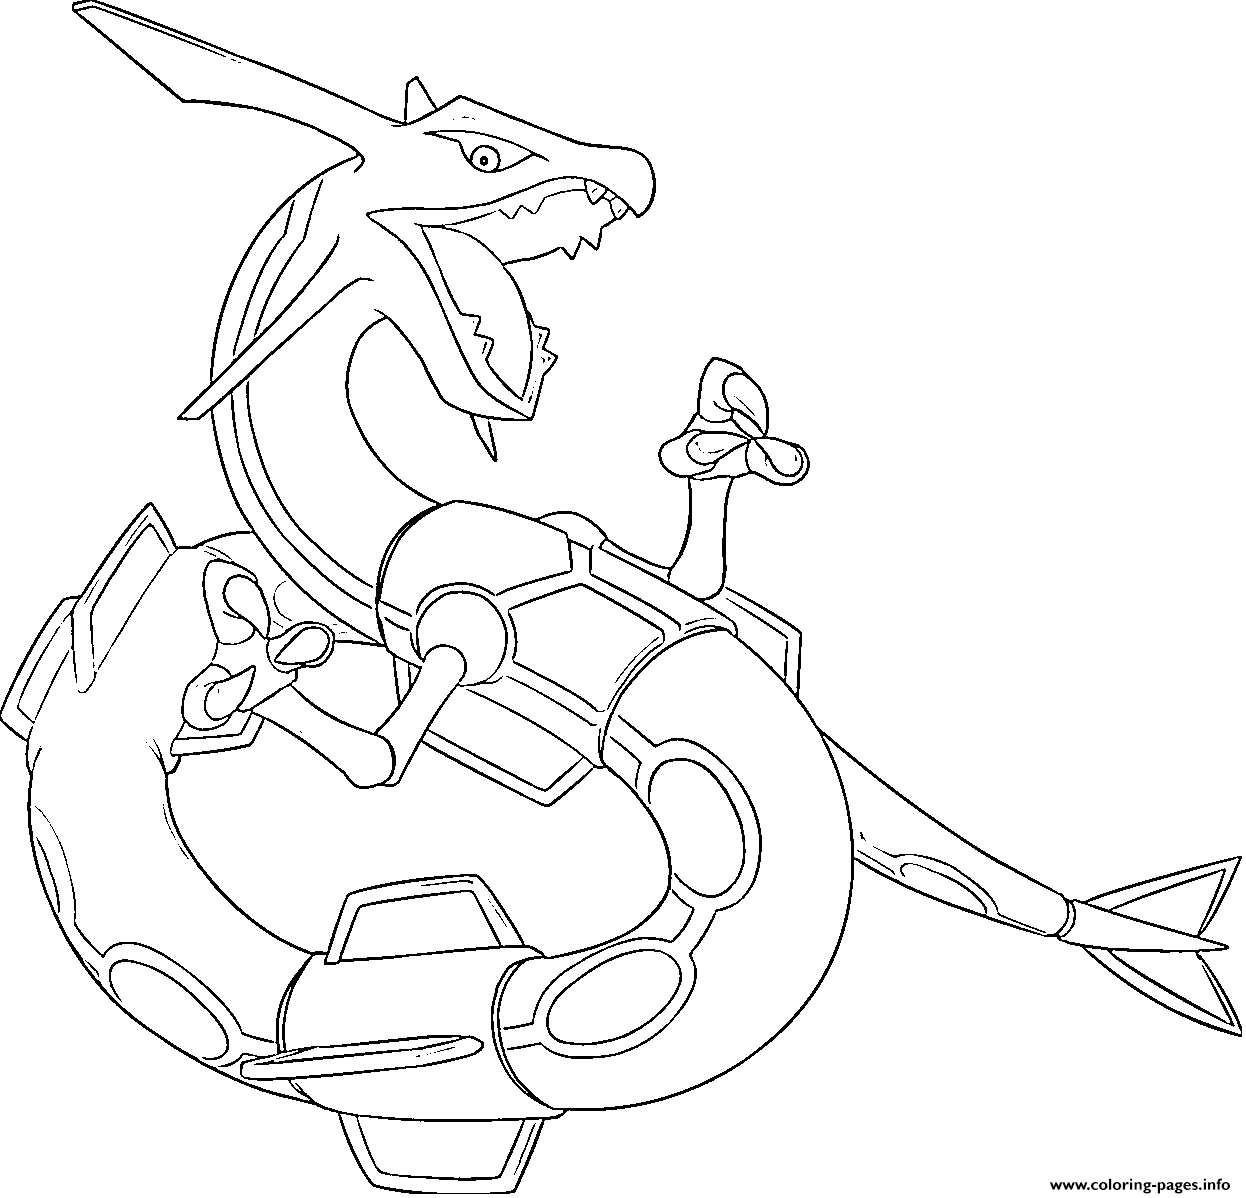 Rayquaza Pokemon Coloring Pages - Hd Football